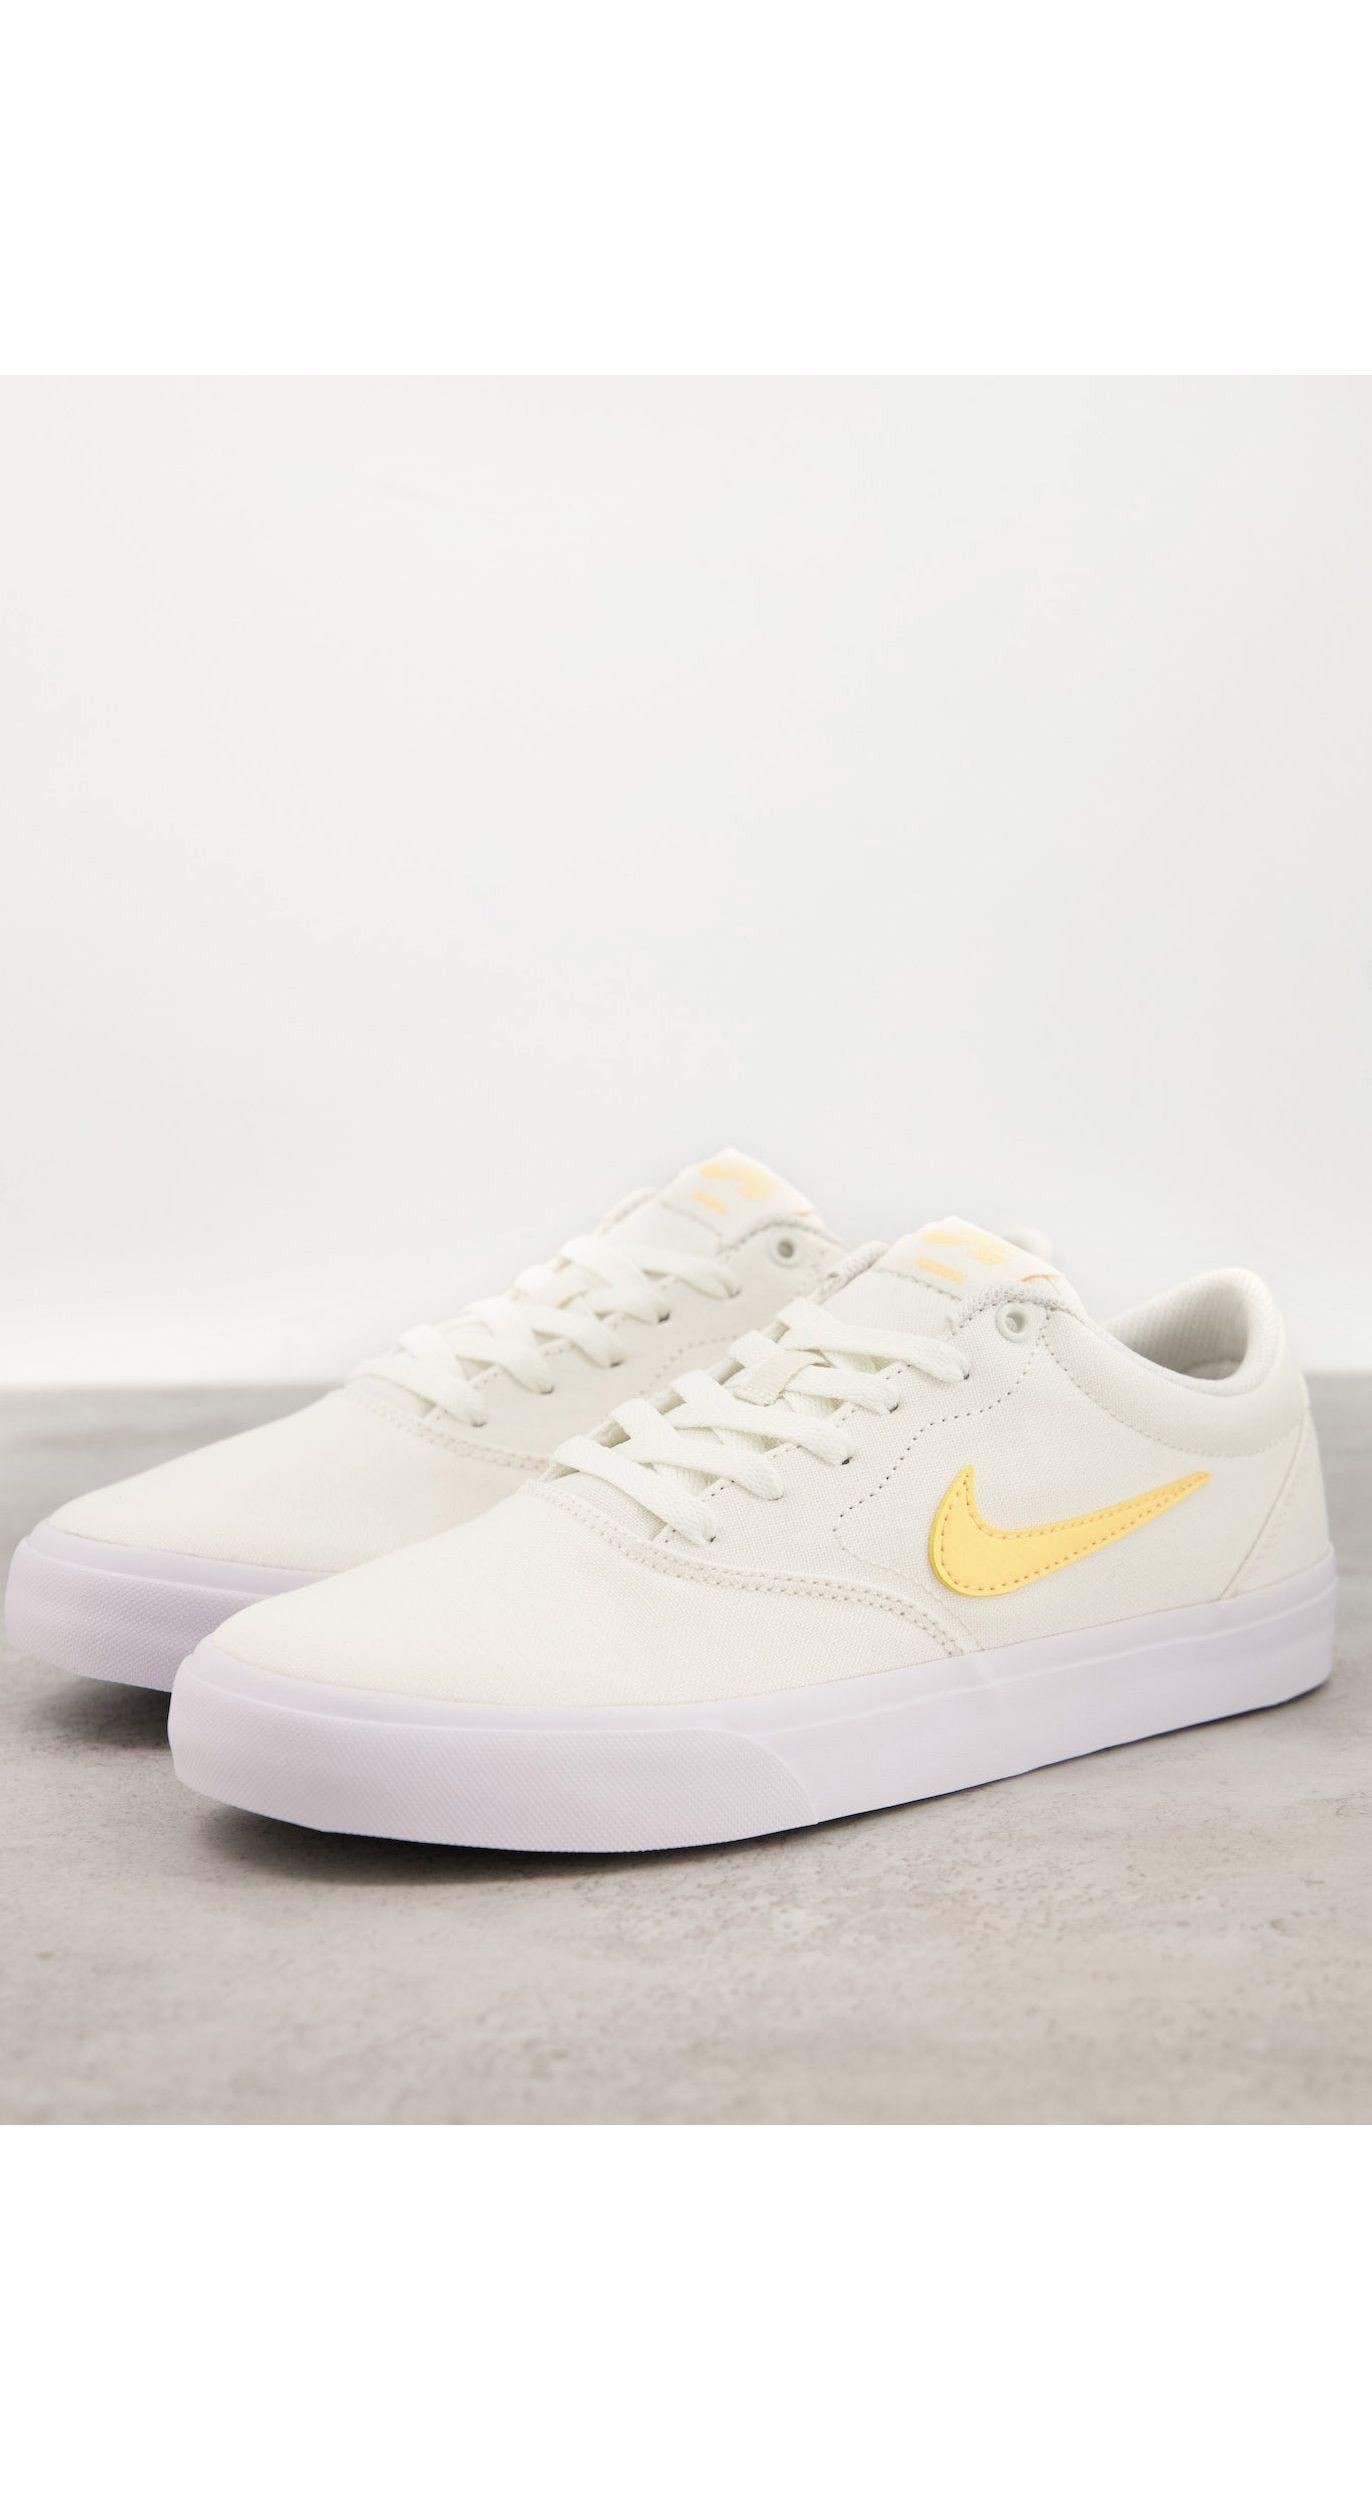 Nike - SB Charge - Baskets en toile - Voile Toile Nike pour homme ...